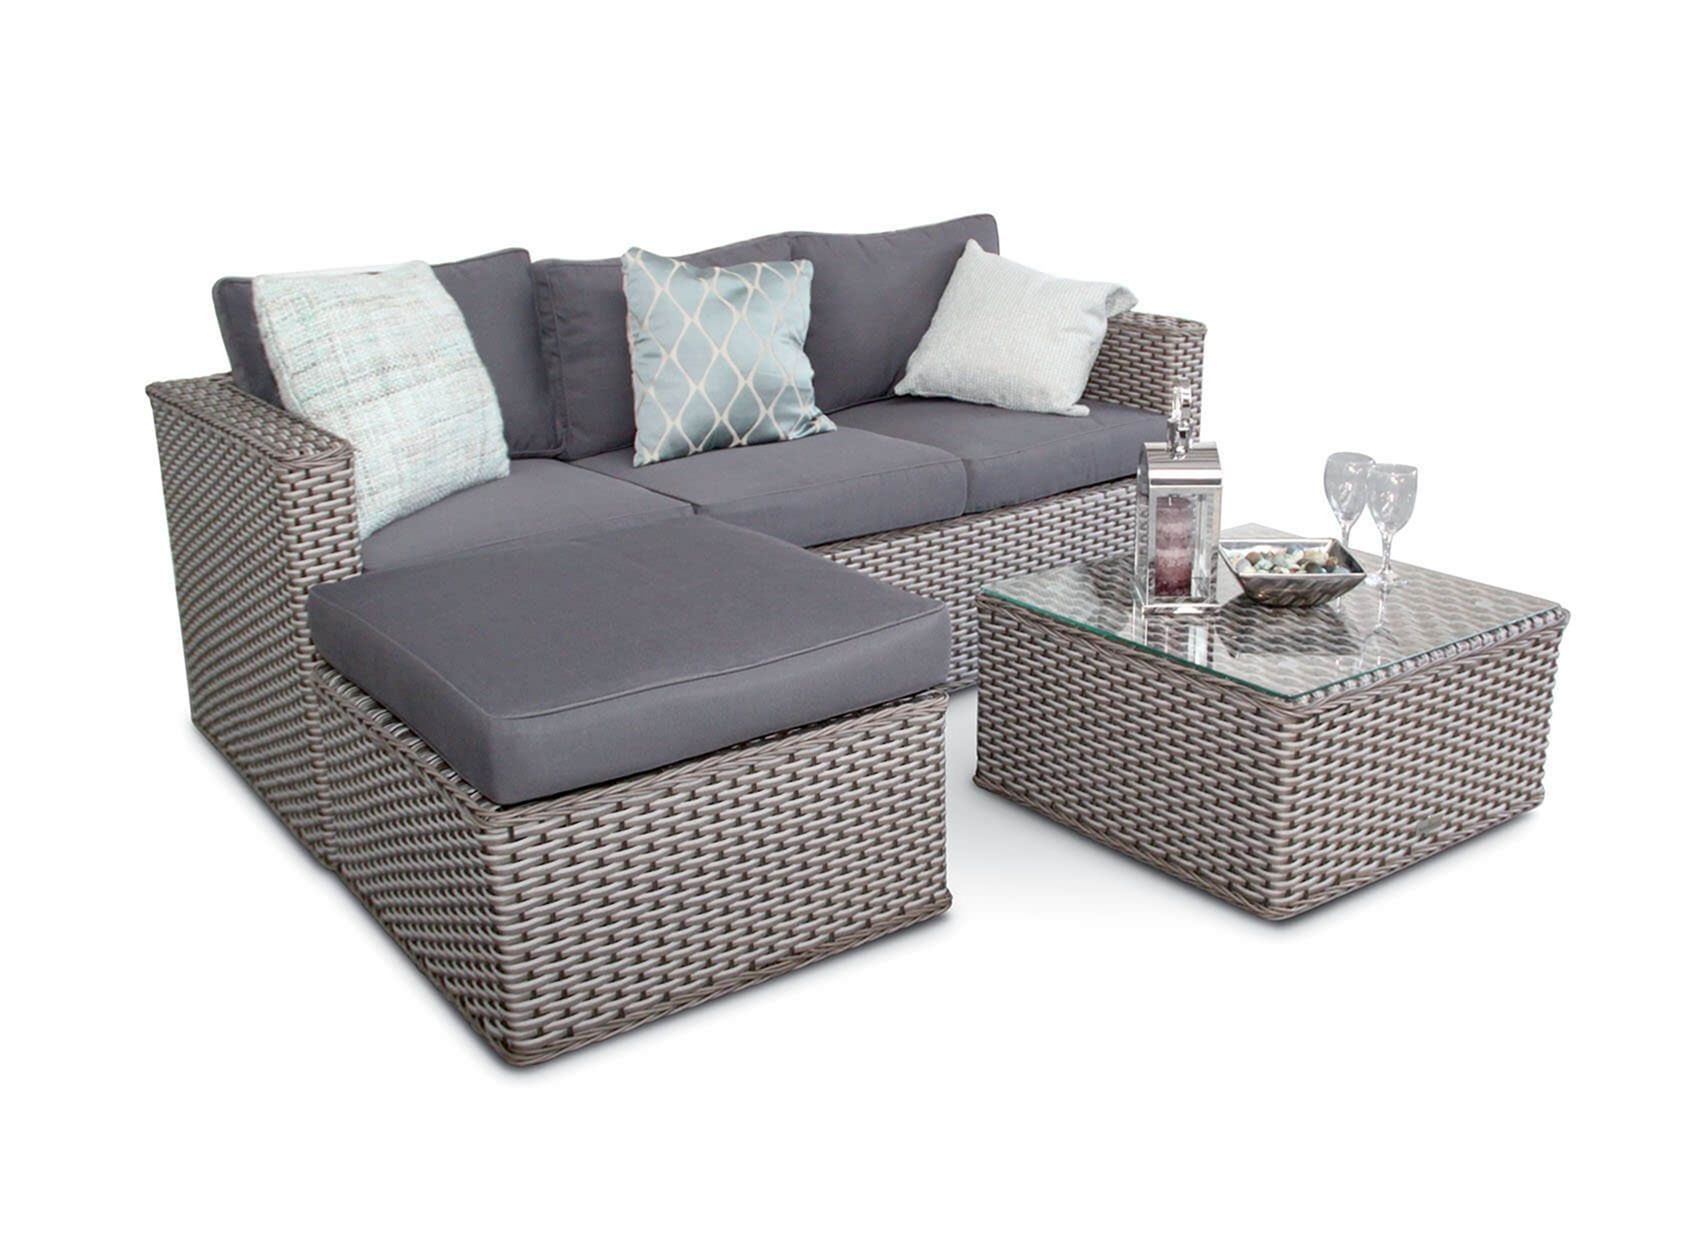 20 Attractive Simple Tiny House Decorations To Inspire You Grey Rattan Corner Sofa Outdoor Sofa Sets Furniture Sofa Set